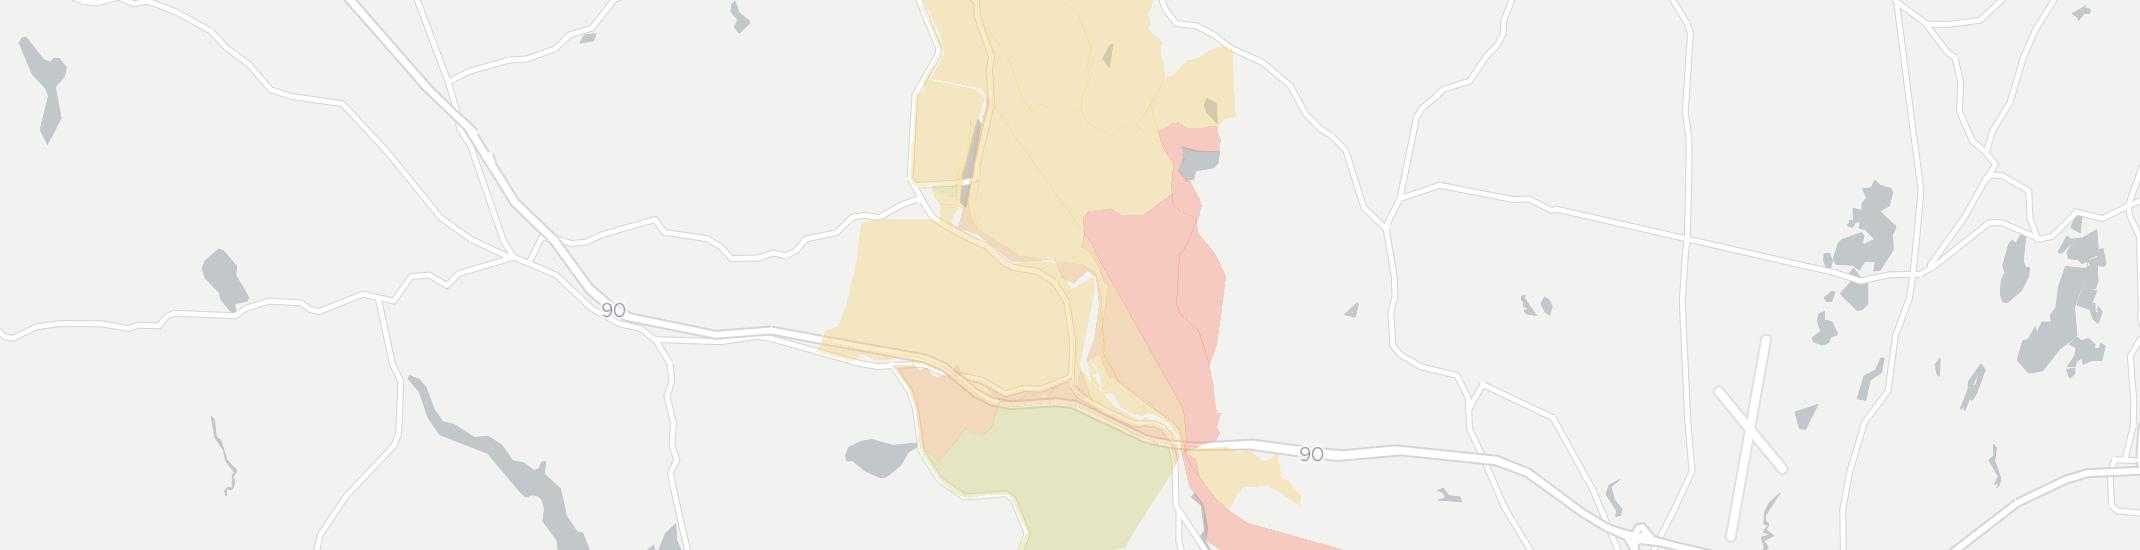 Woronoco Internet Competition Map. Click for interactive map.